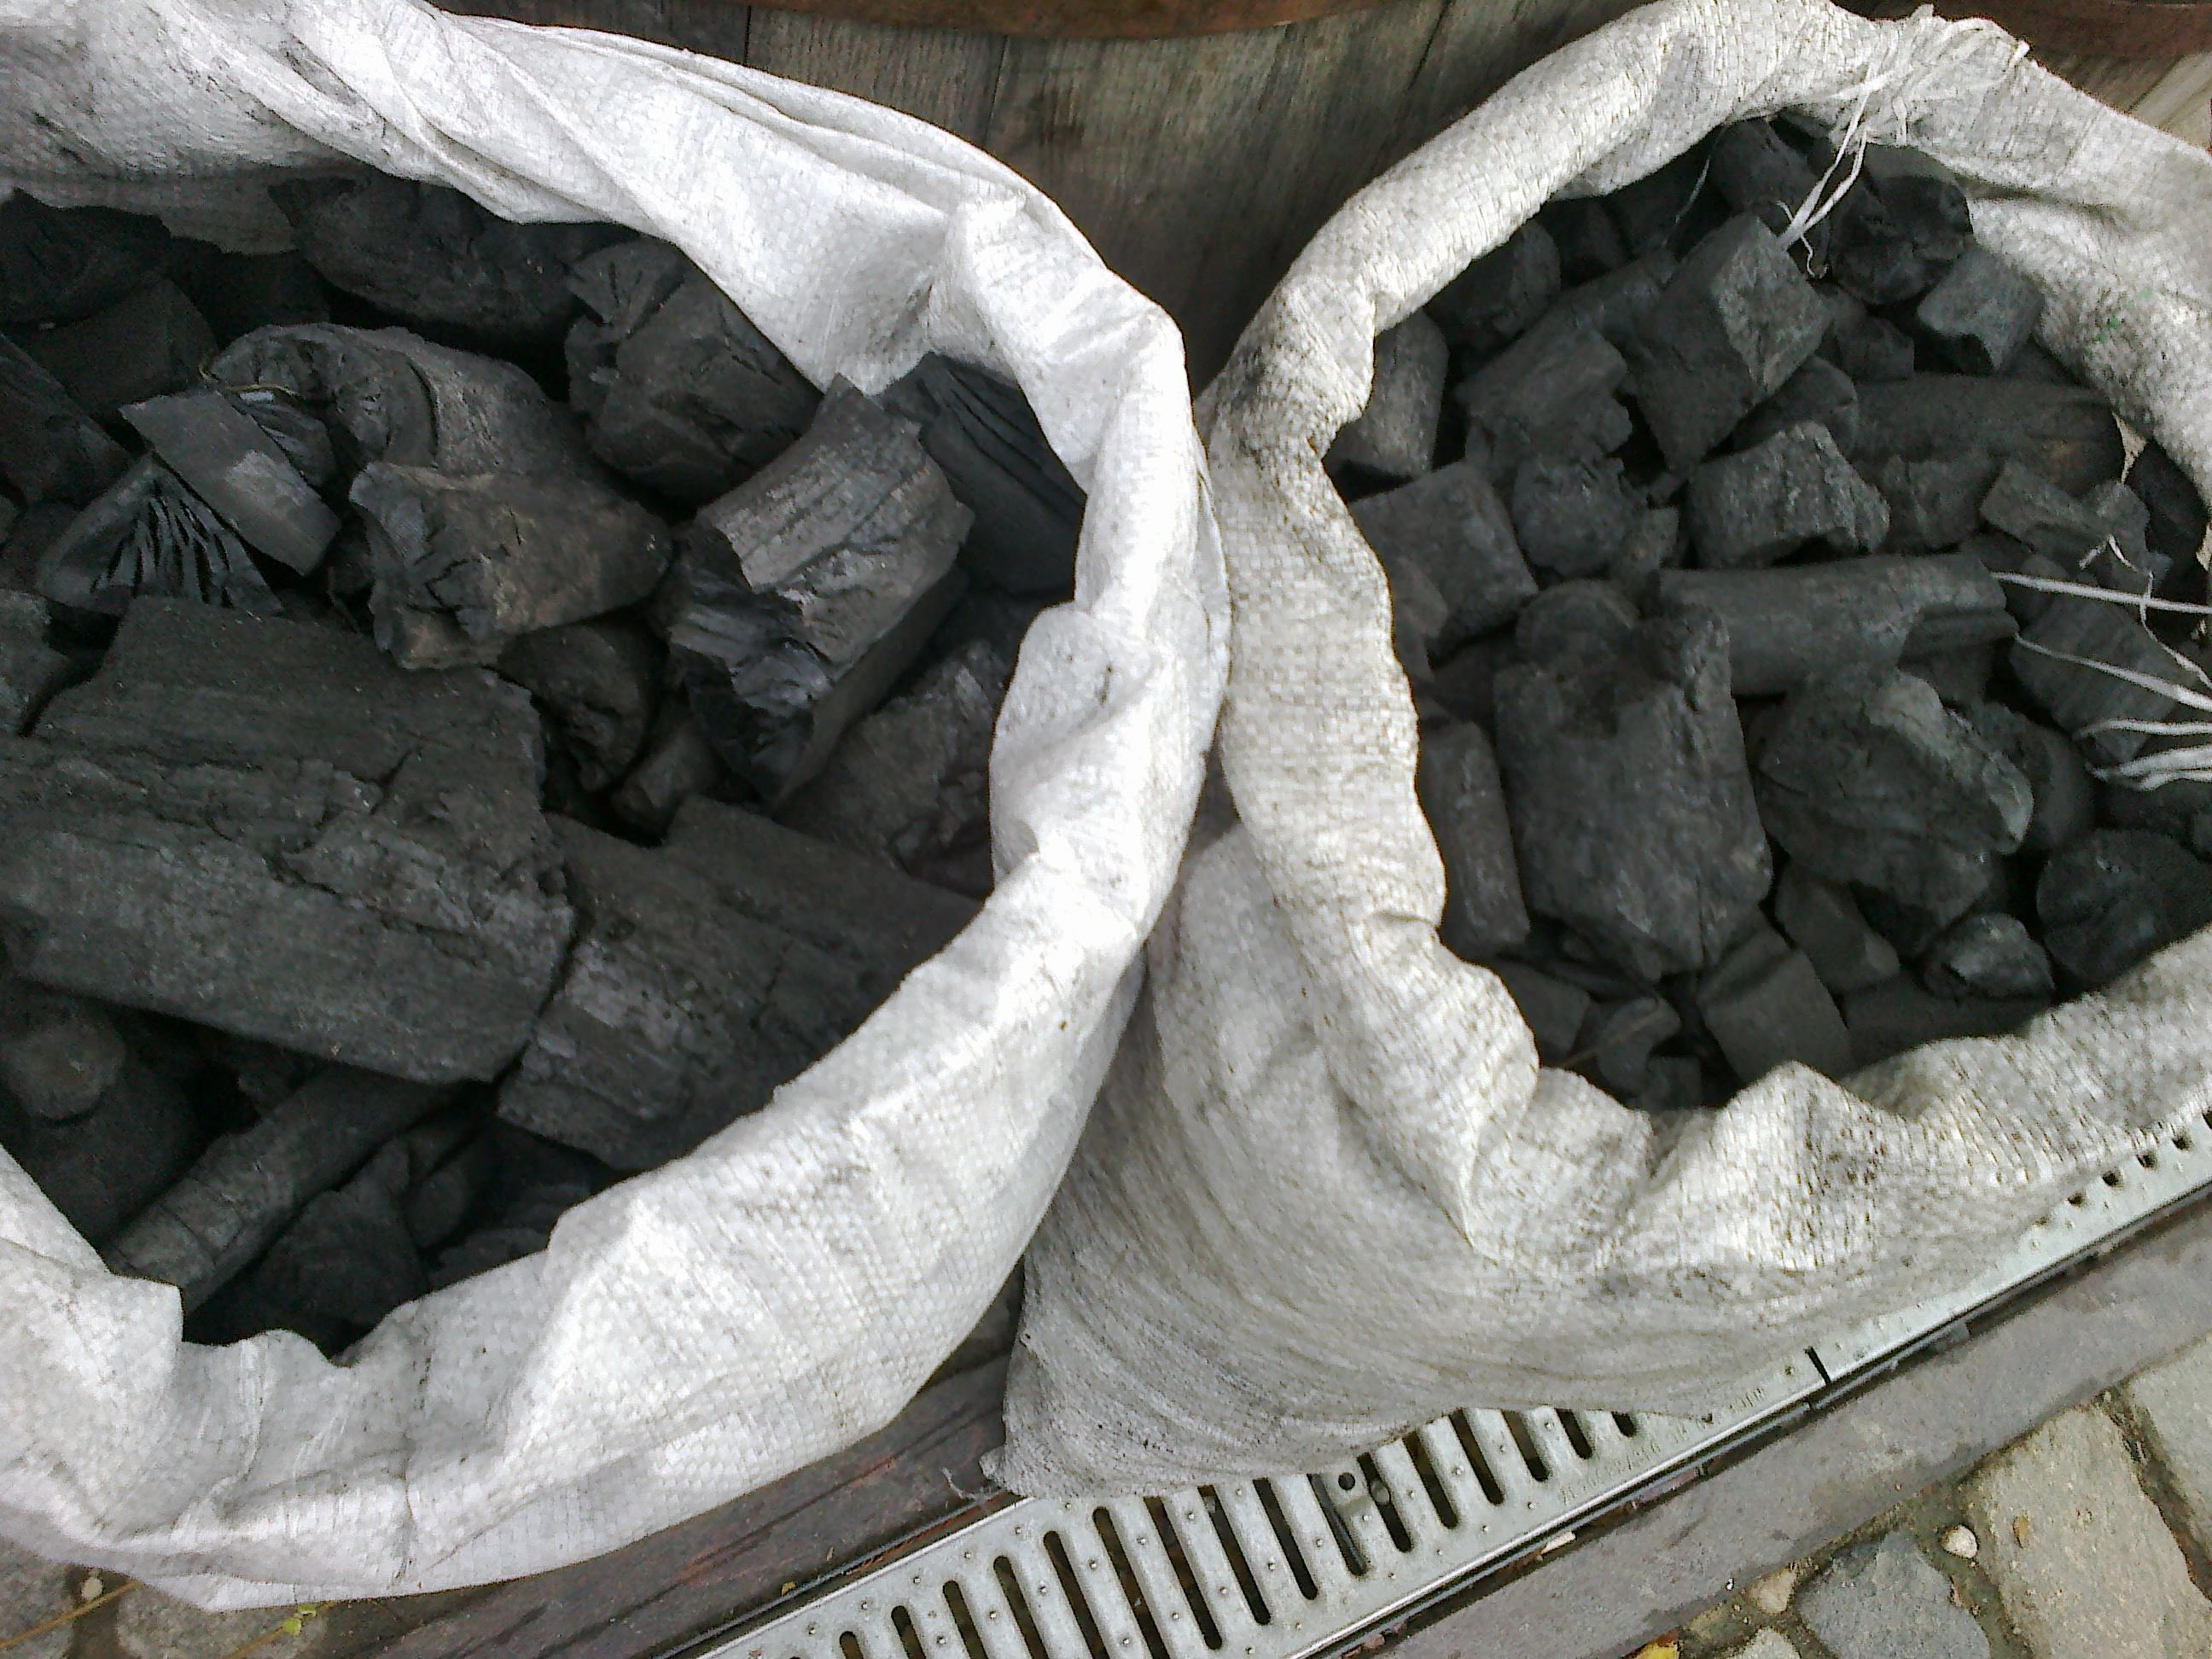 Pellets - Briquets - Charcoal, Wood Charcoal, hard wood